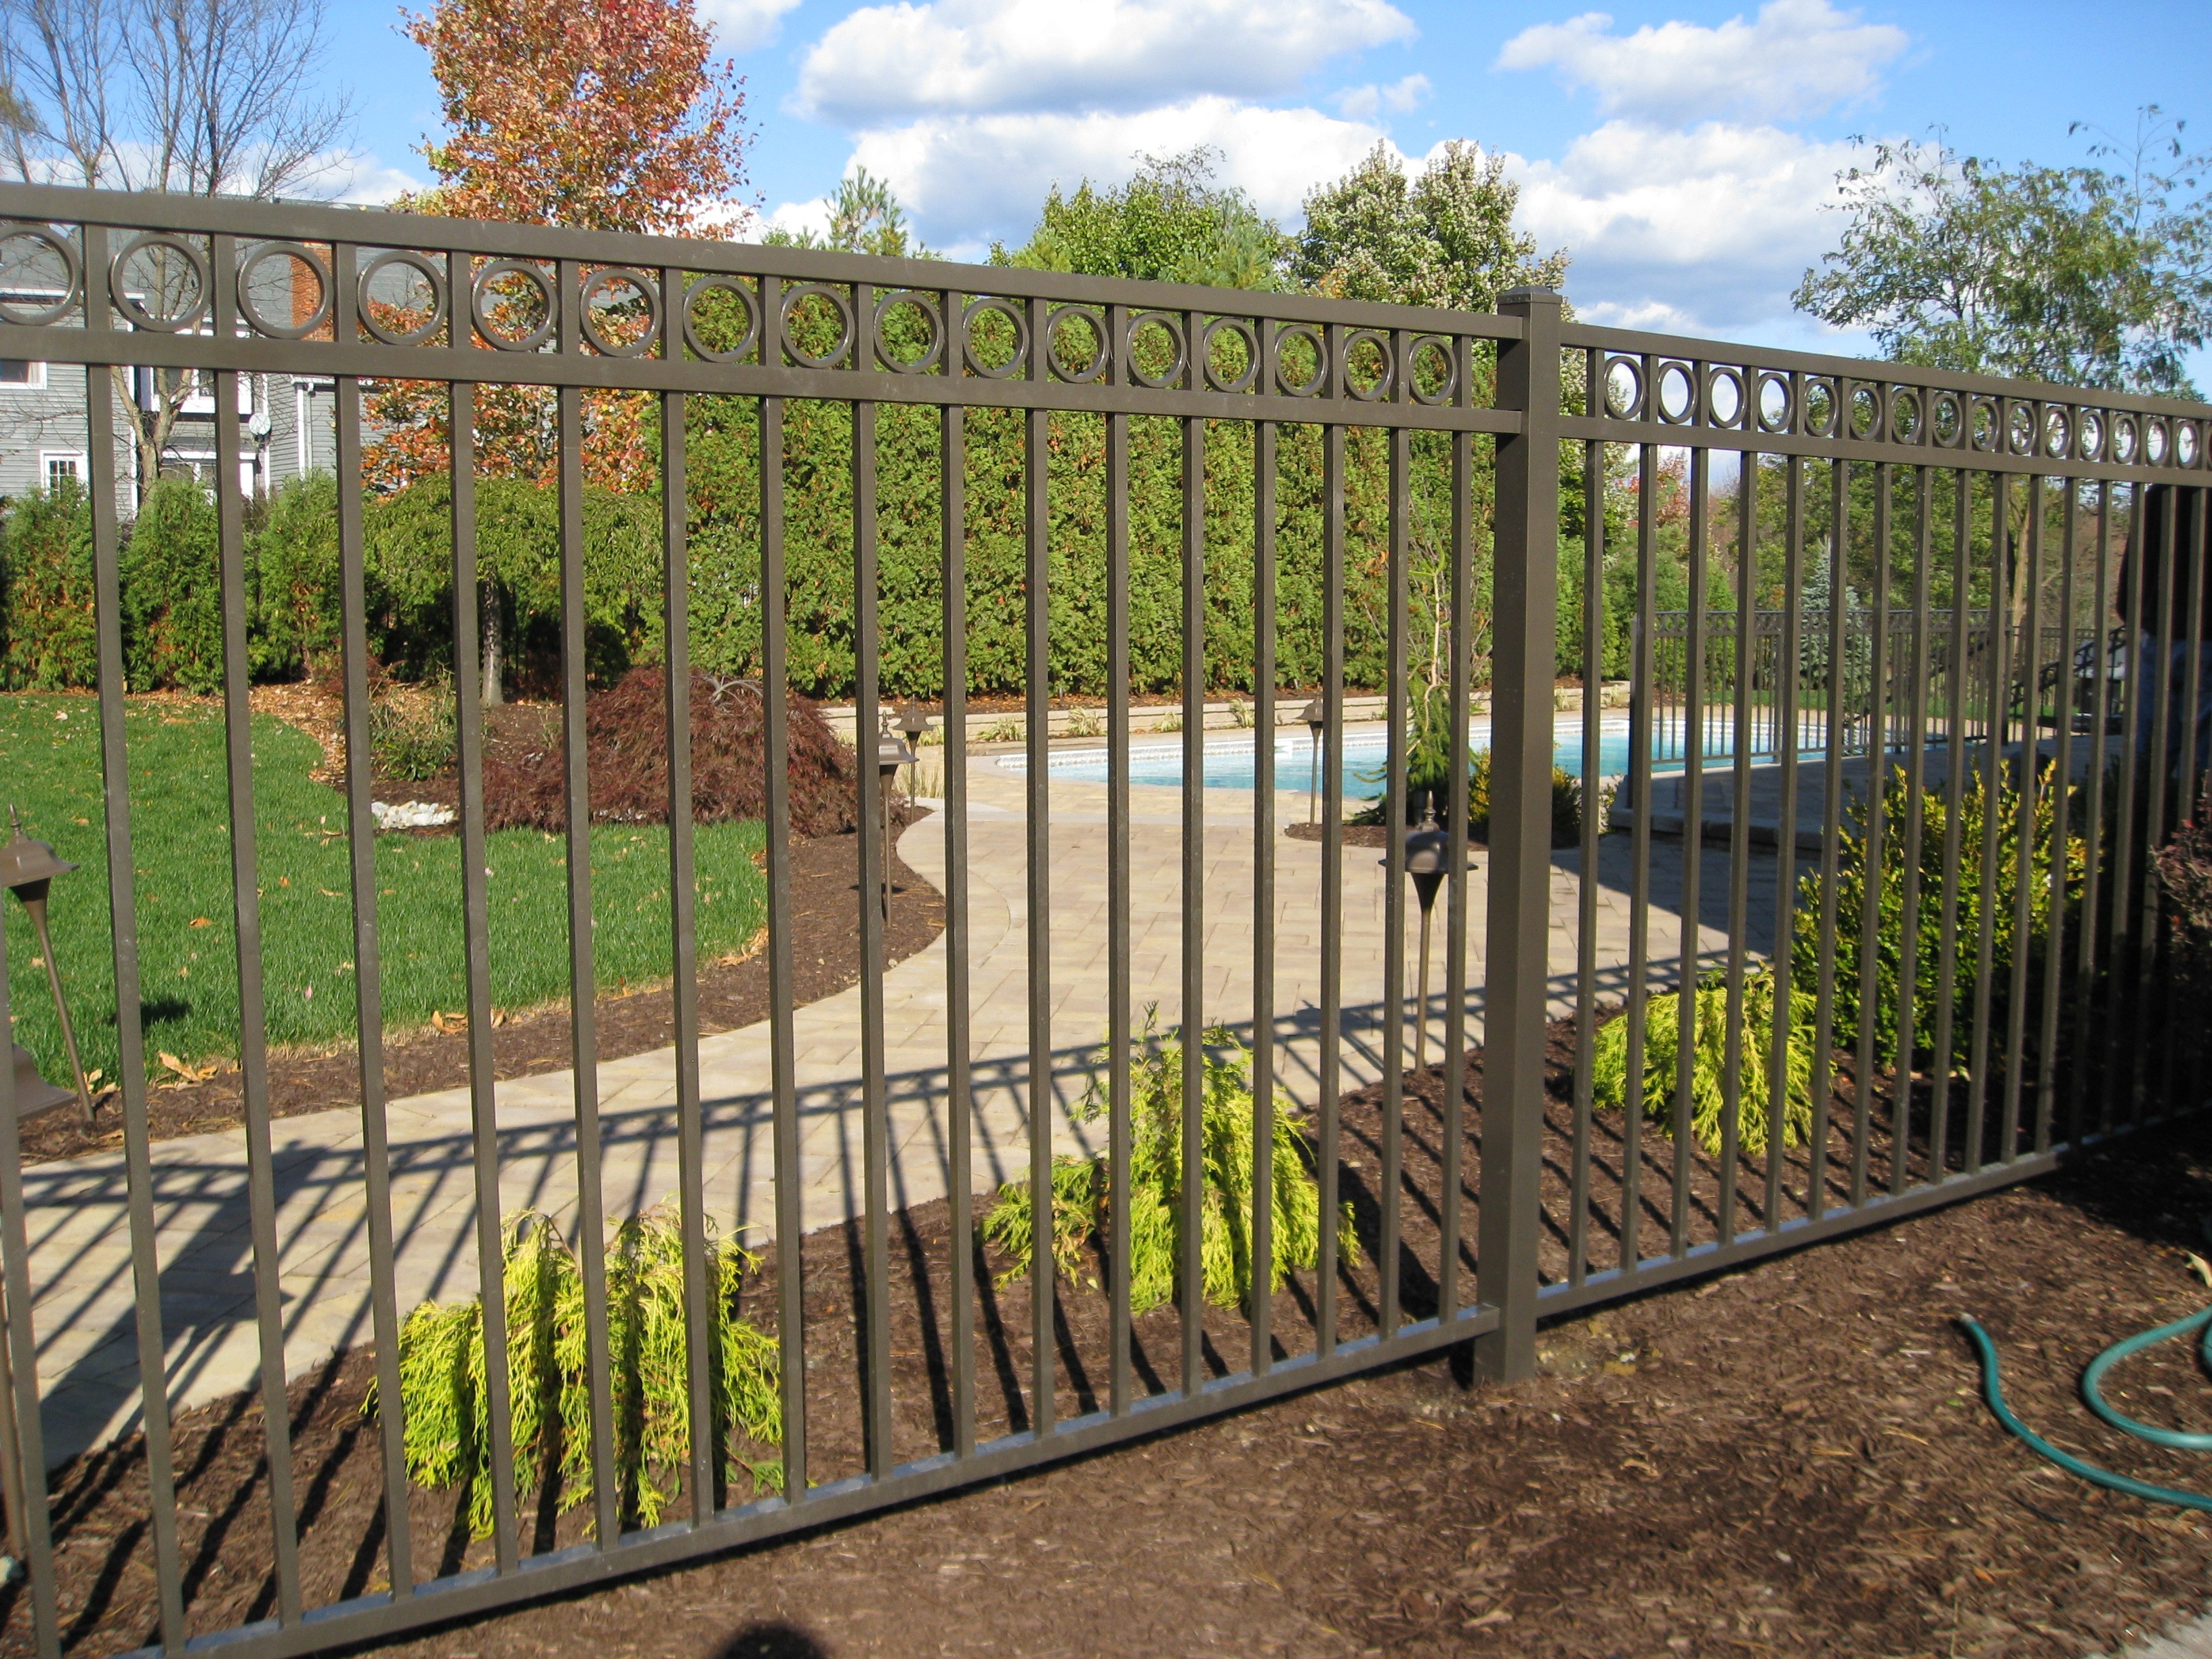 Raleigh-Durham Custom Fence & Gate Solutions - Vinyl Fences, Wood Fences, Aluminum Fences, PVC Pergola, Repairs & Replacement, Gates- 5-We do Residential & Commercial Fence Installation, Fencing Repairs and Replacements, Fence Designs, Gate Installations, Pool Fencing, Balcony Railings, Privacy Fences, PVC Fences, Wood Pergola, Aluminum and Chain link, and more